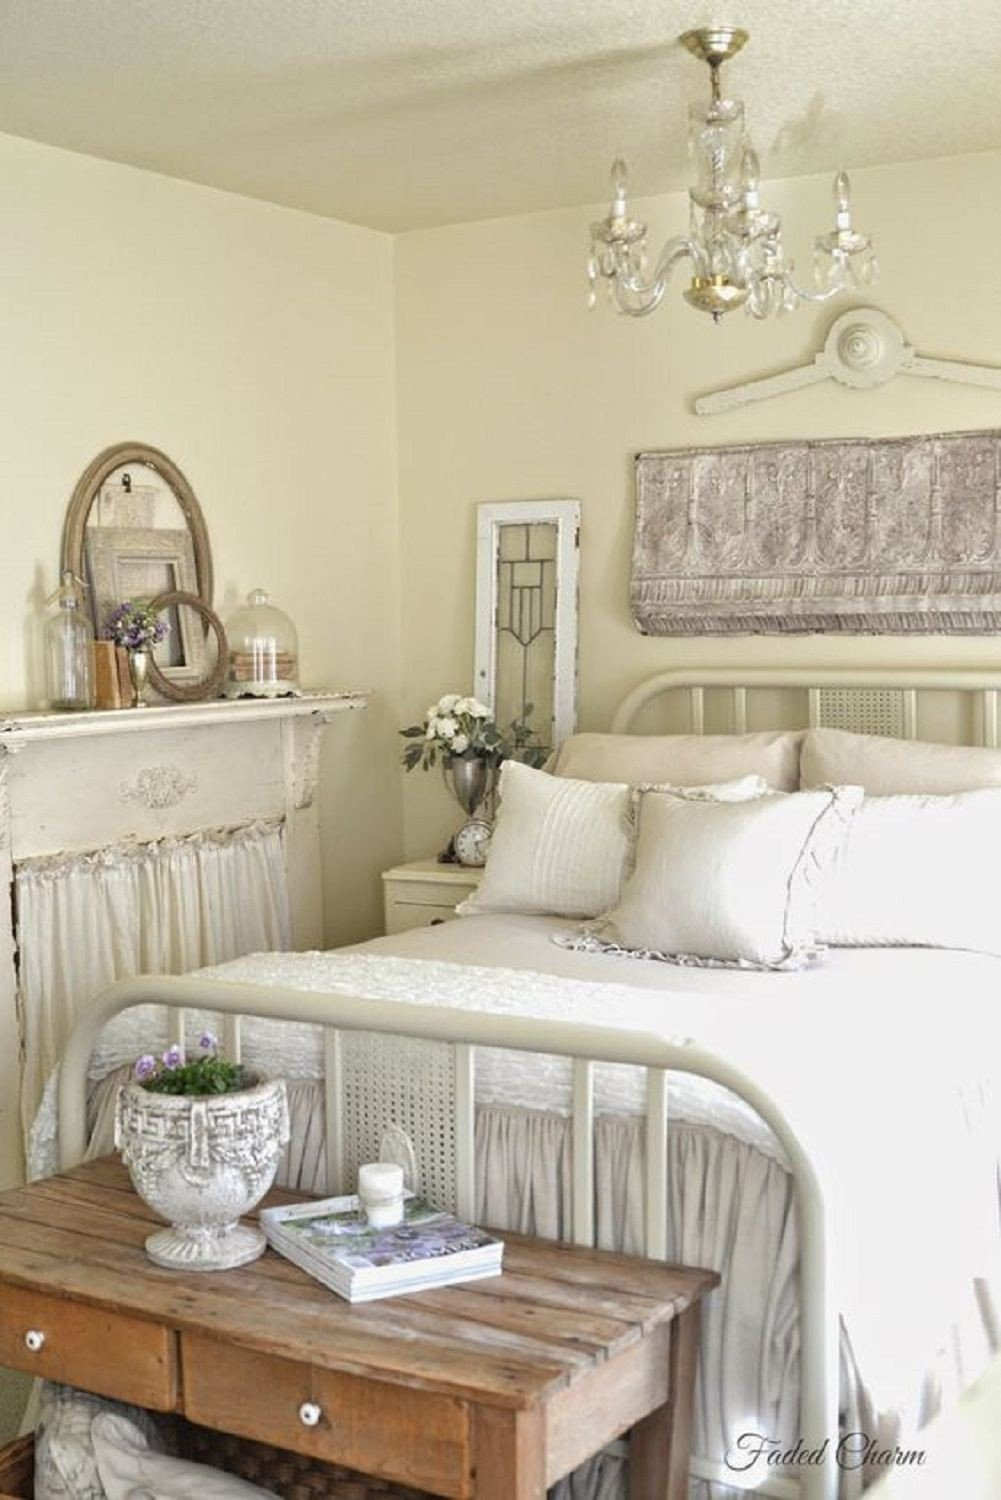 French Provincial Bedroom Furniture Unique Ideas for French Country Style Bedroom Decor